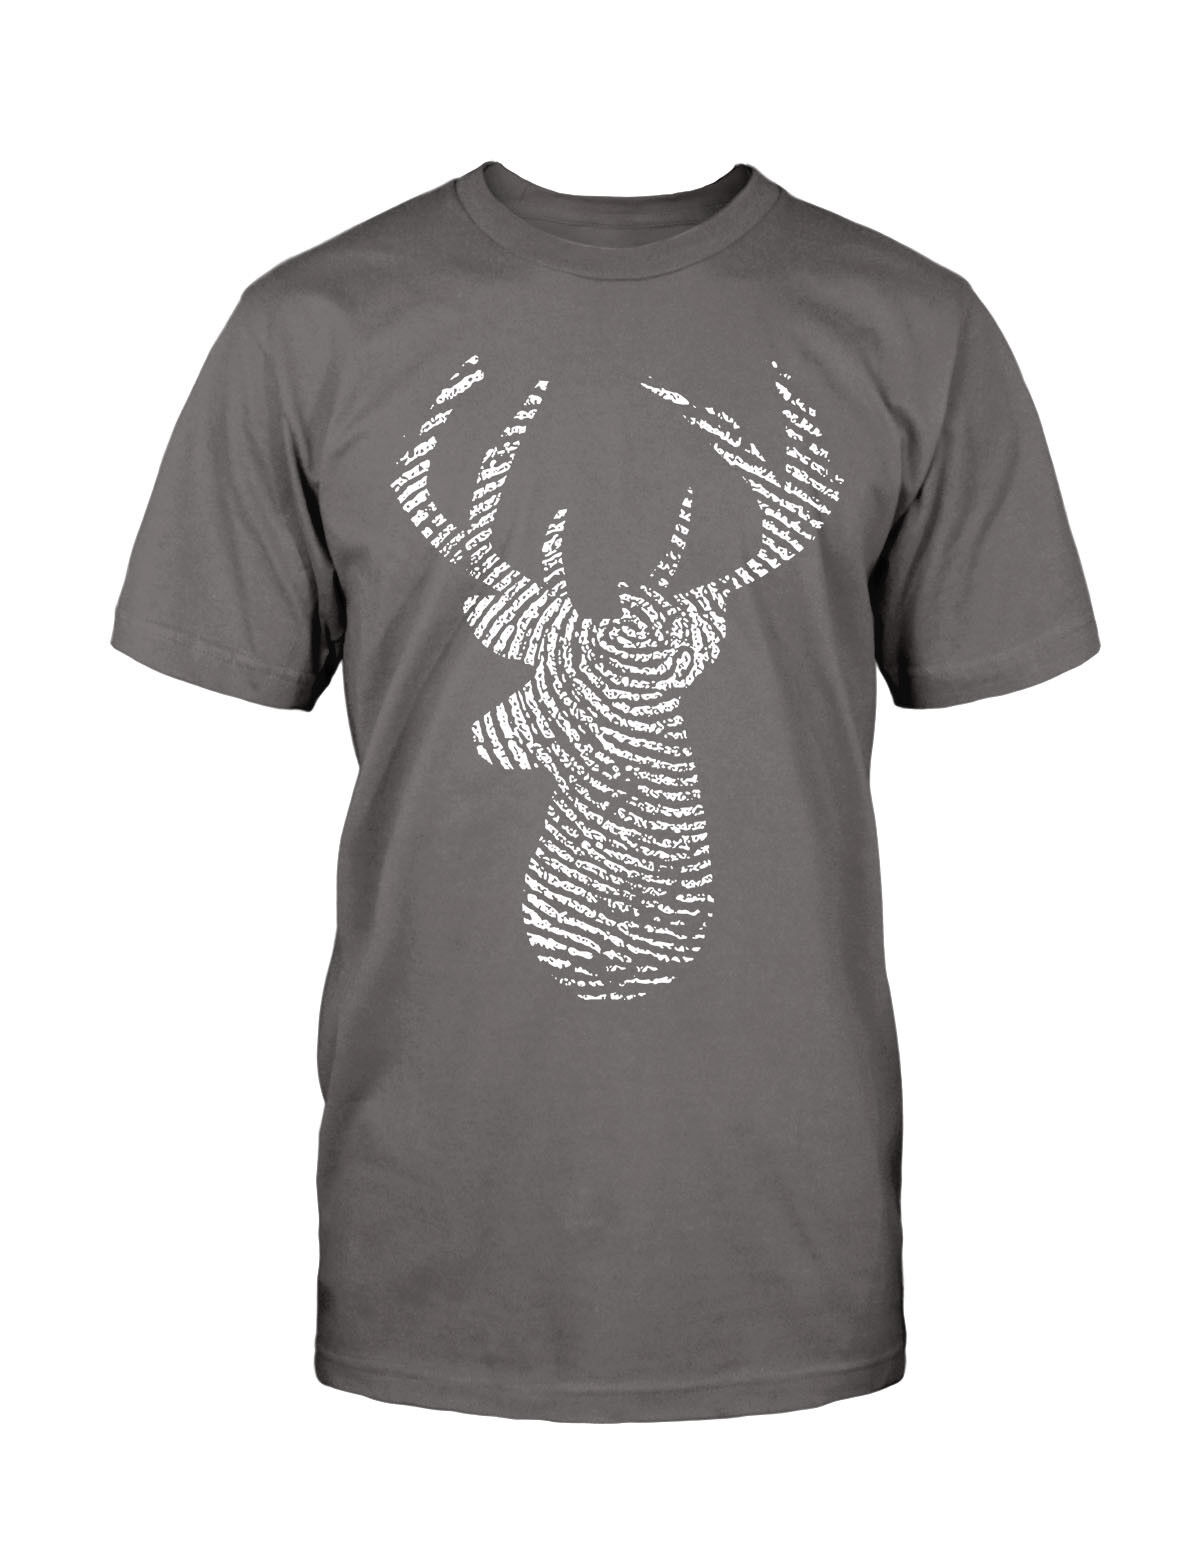 Deer Doigt T-shirt CHASSE print empreinte CHASSEUR CHASSE T-shirt HUNTER cerf bois Fun Nature Wild fe7d9c